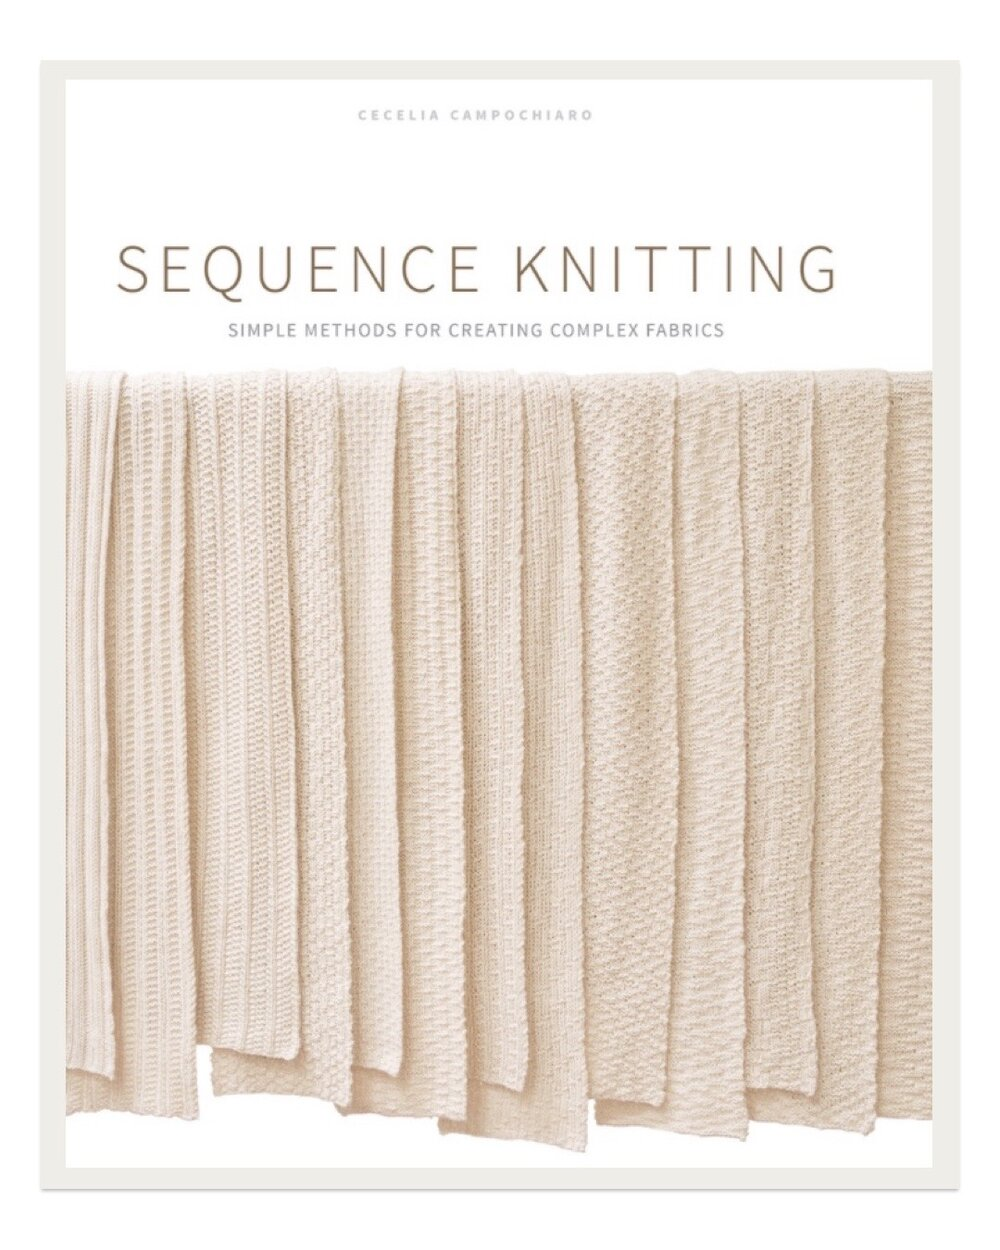 As I designer I love to create projects that use interesting stitches or constructions to make otherwise simple and easy patterns look more complex. I adore all of the simple textures in this book and find it so helpful when looking to jazz up a basic knit designer.